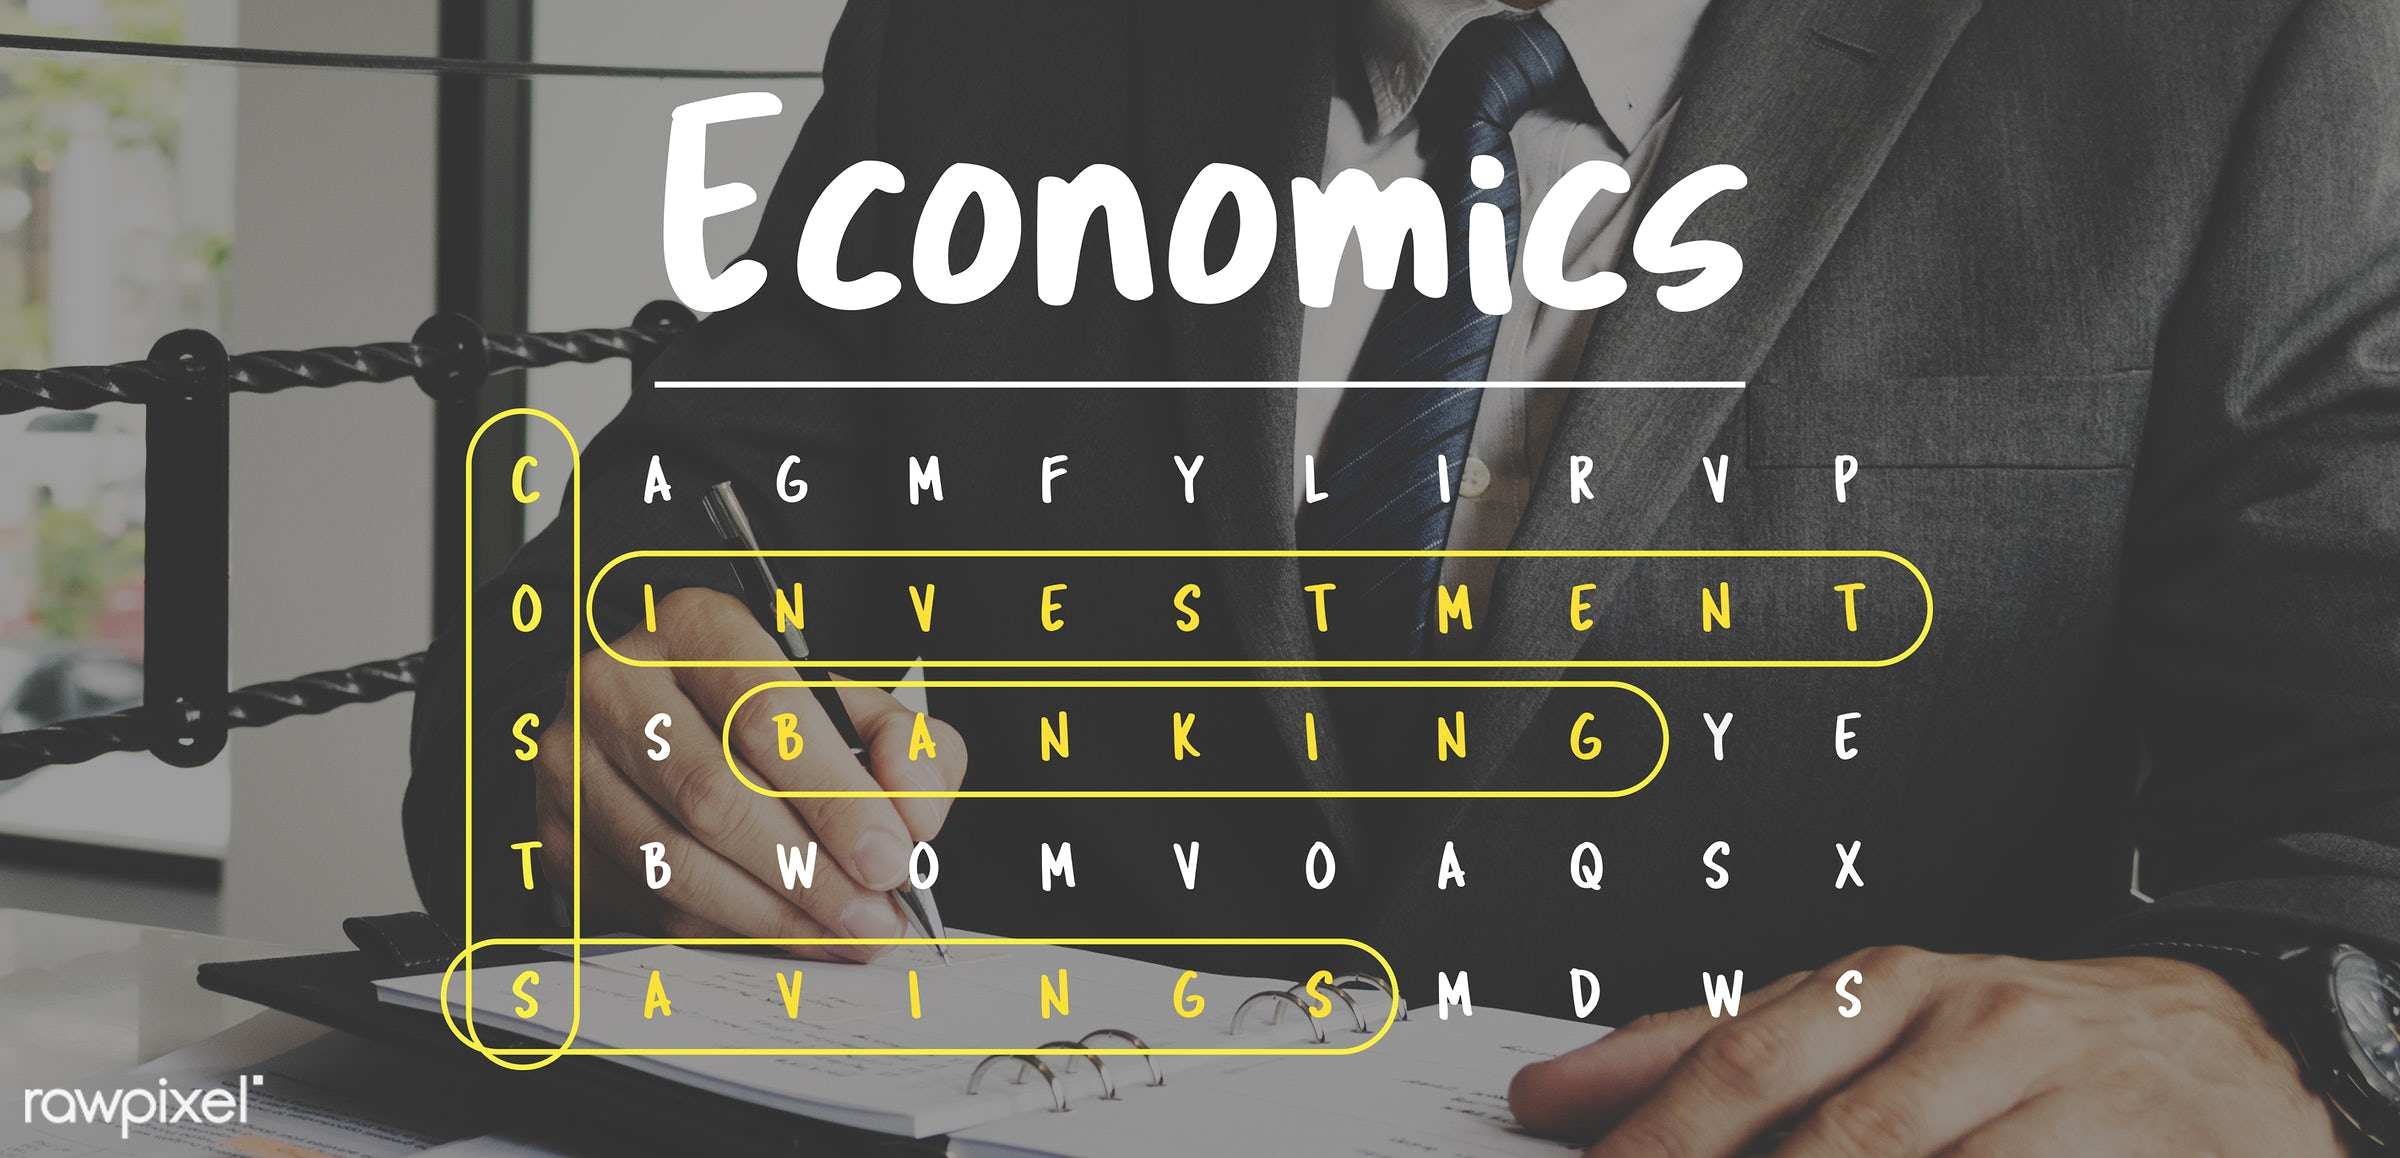 accounting, adult, agenda, banking, business, business plan, businessman, businesspeople, commerce, costs, crossword,...